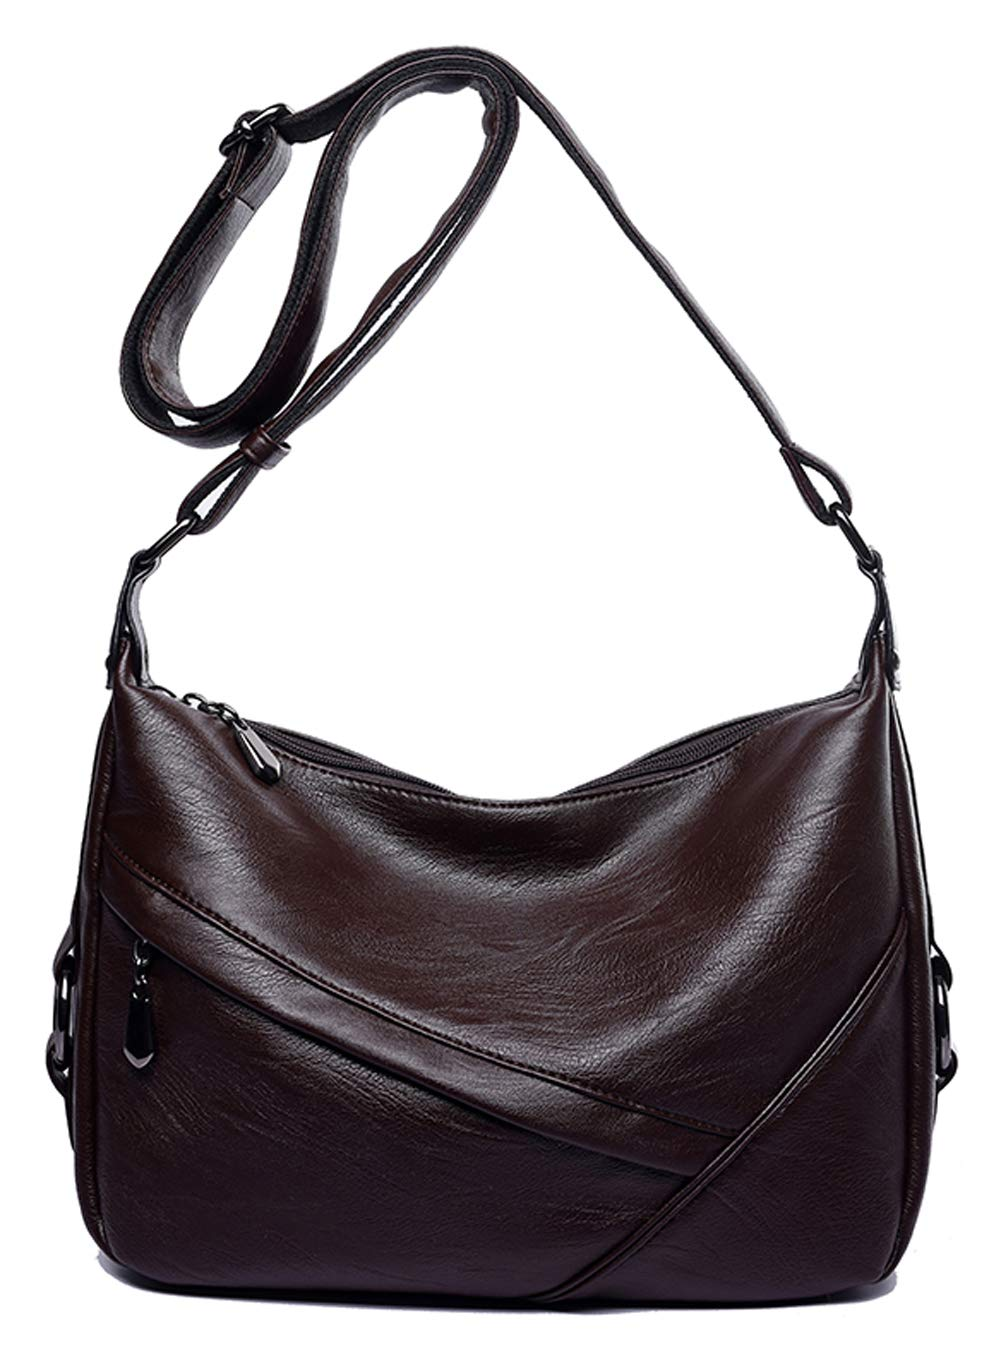 af99681c9cc4 Women's Retro Sling Shoulder Bag from Covelin, Leather Crossbody Tote  Handbag product image